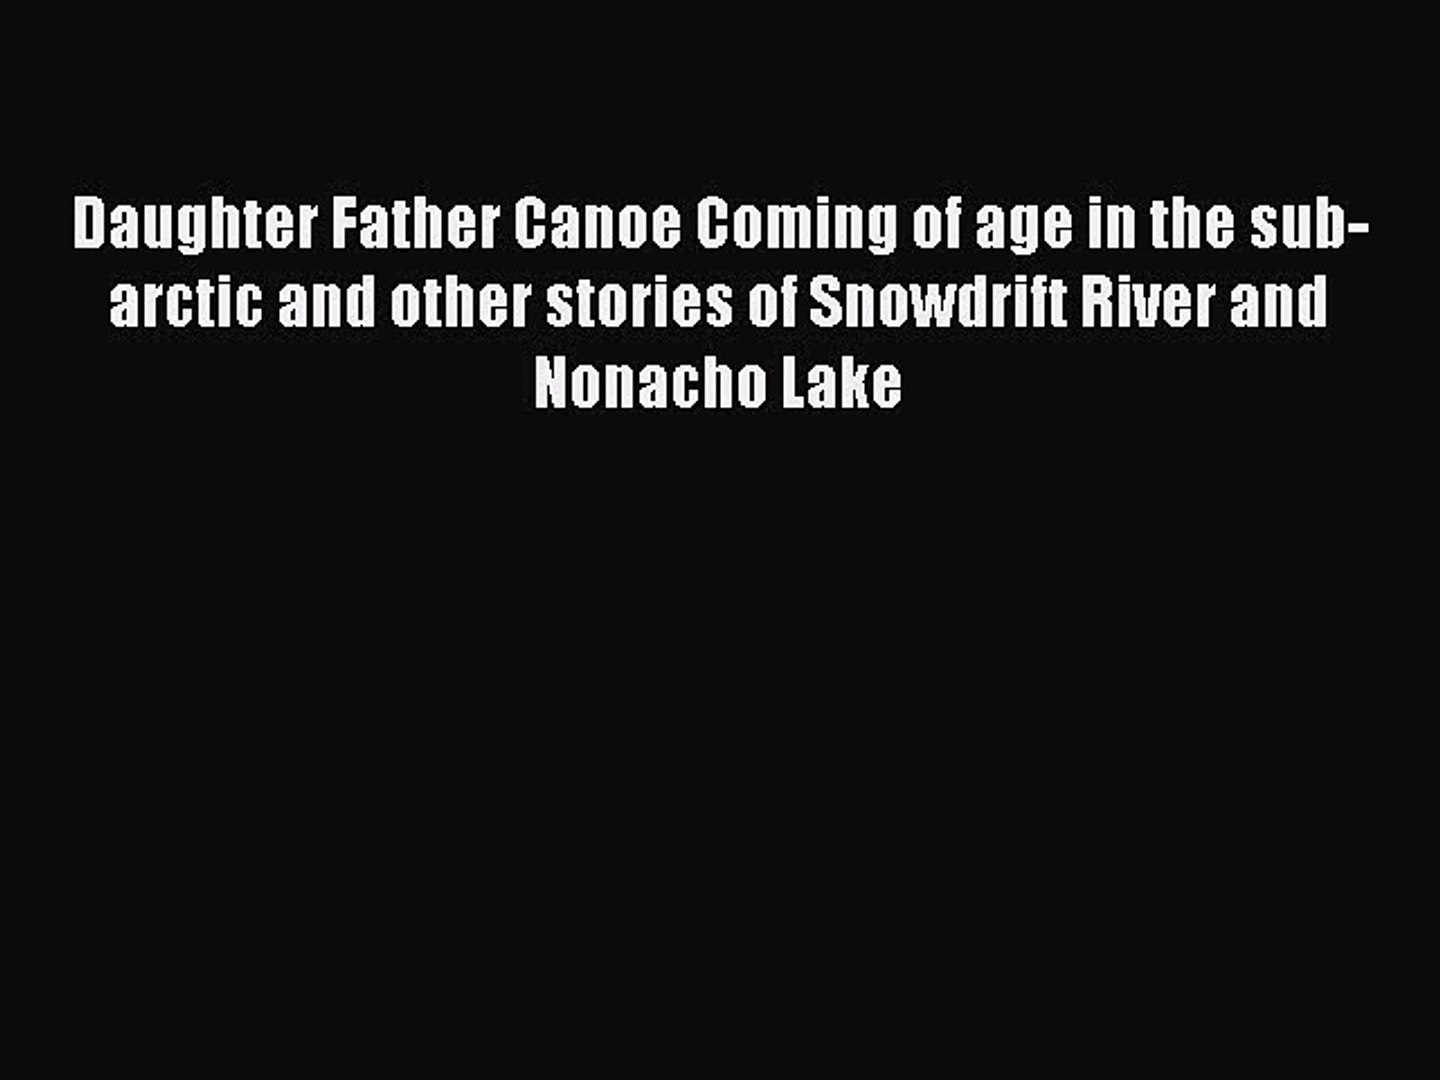 Daughter Father Canoe Coming of age in the sub-arctic and other stories of Snowdrift River and Nonacho Lake